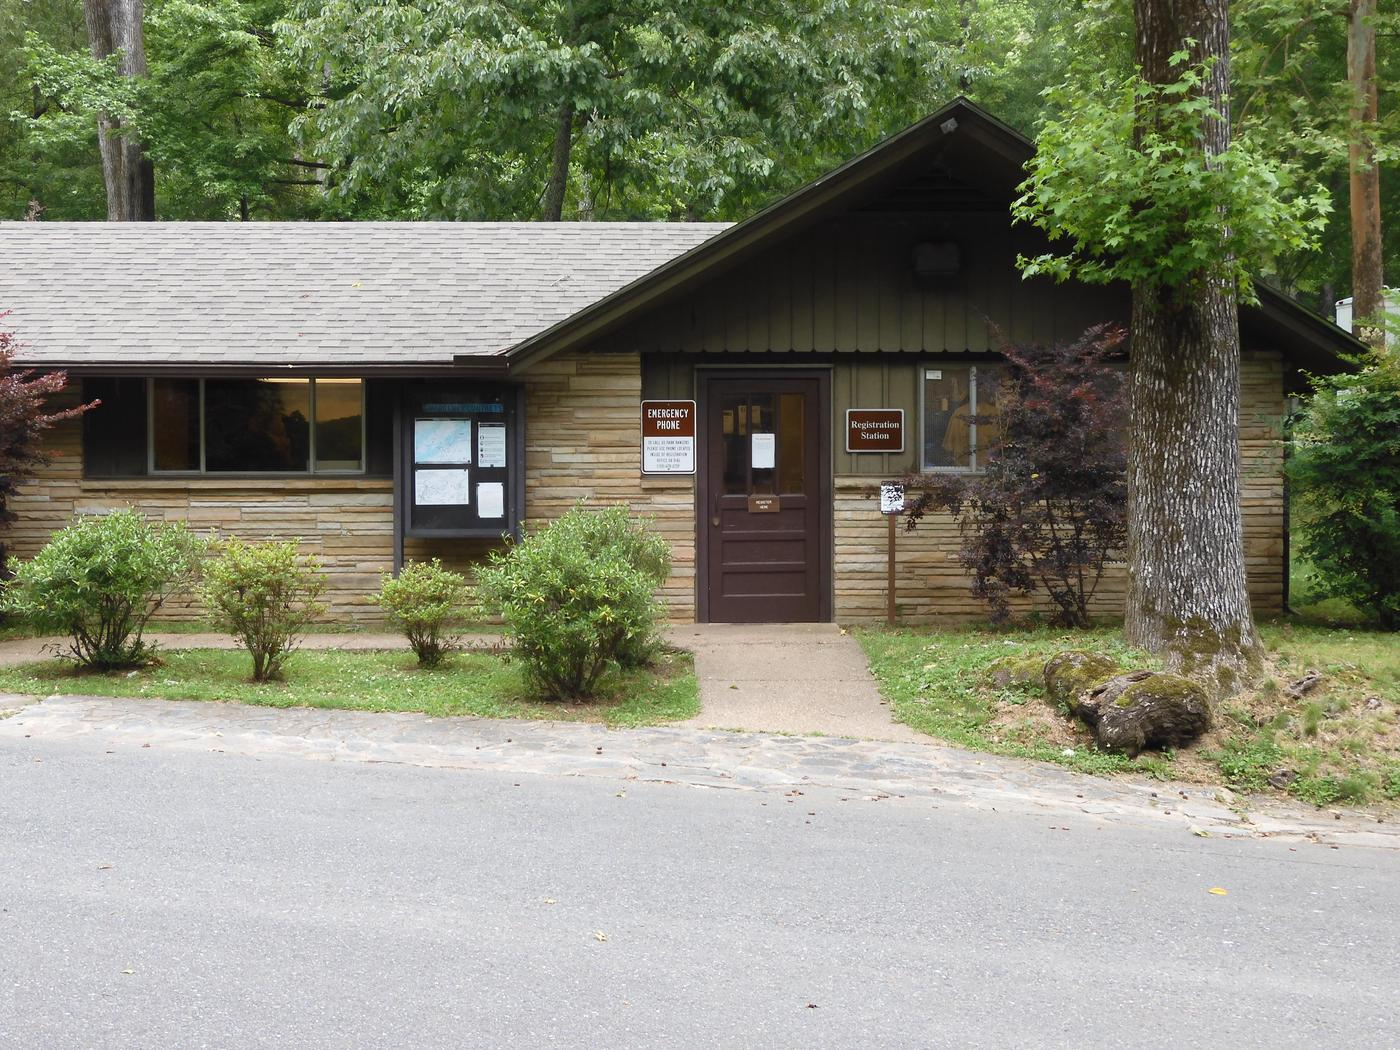 Pay StationThe fee station for campground reservations is located within this building.